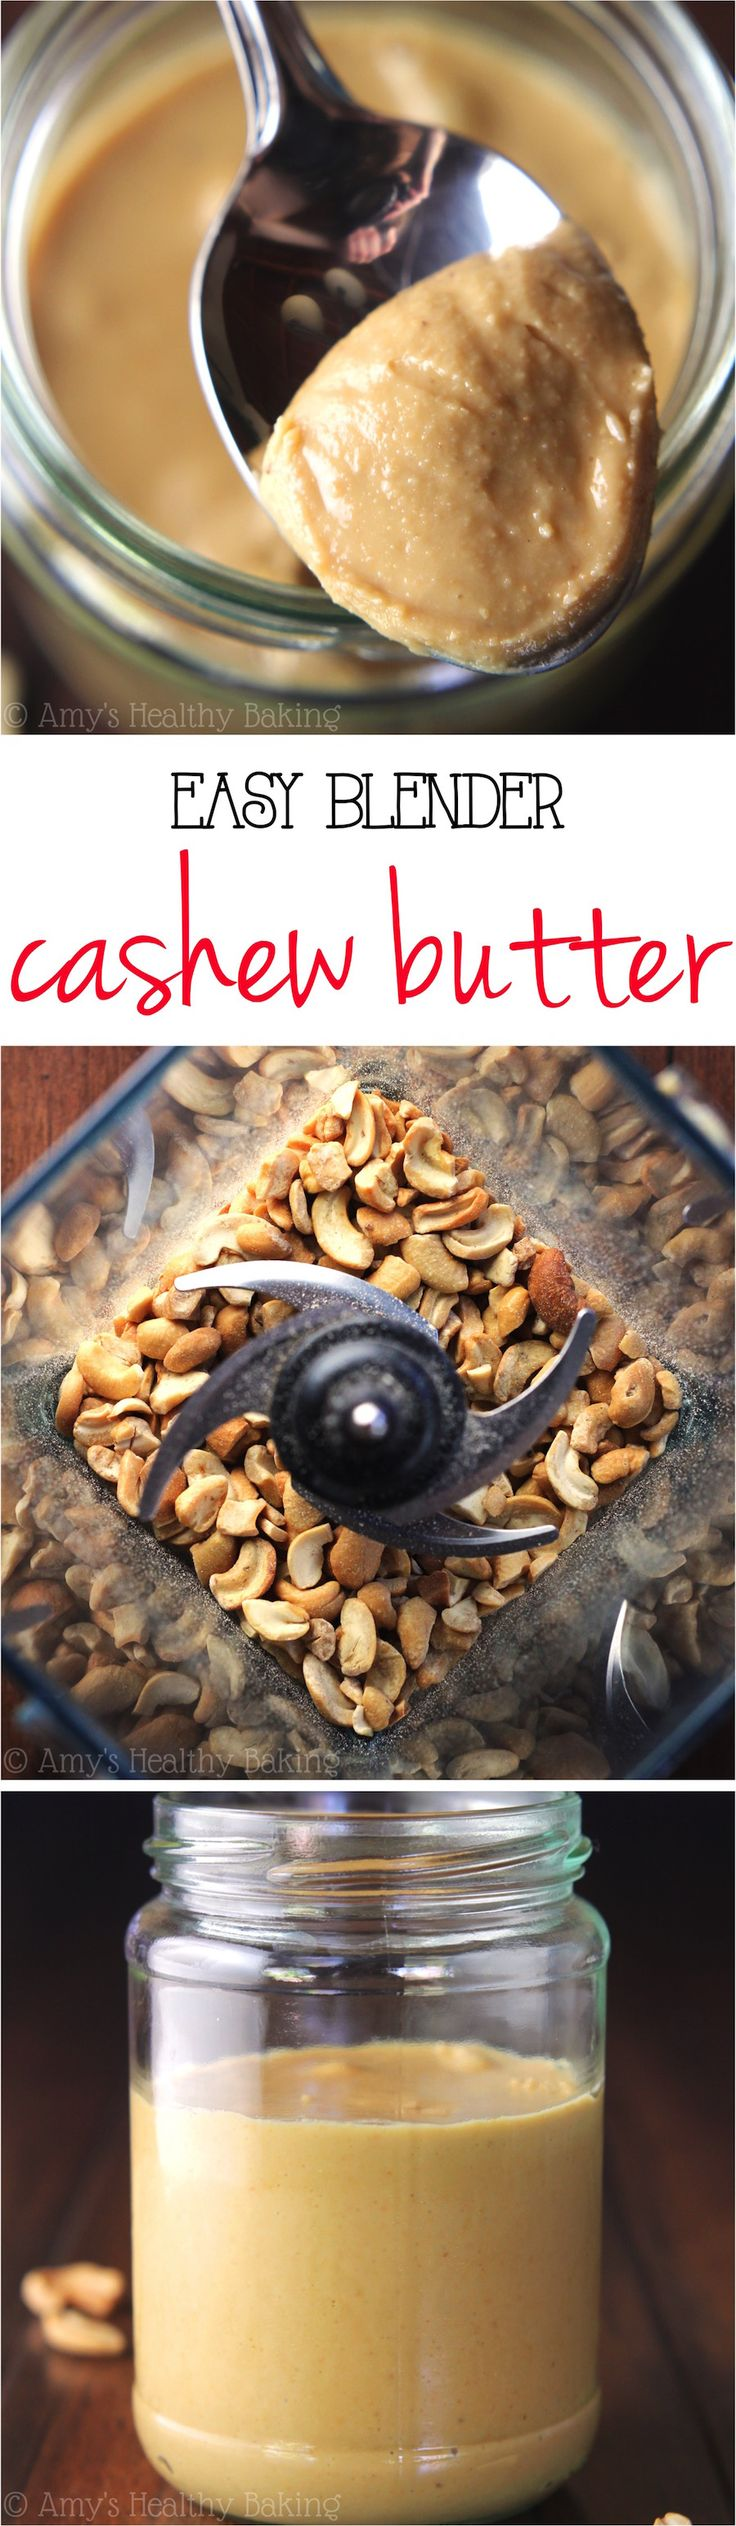 Easy Blender Cashew Butter -- you just need 2 ingredients & 10 minutes! This tastes SO much better than store-bought for half the price!